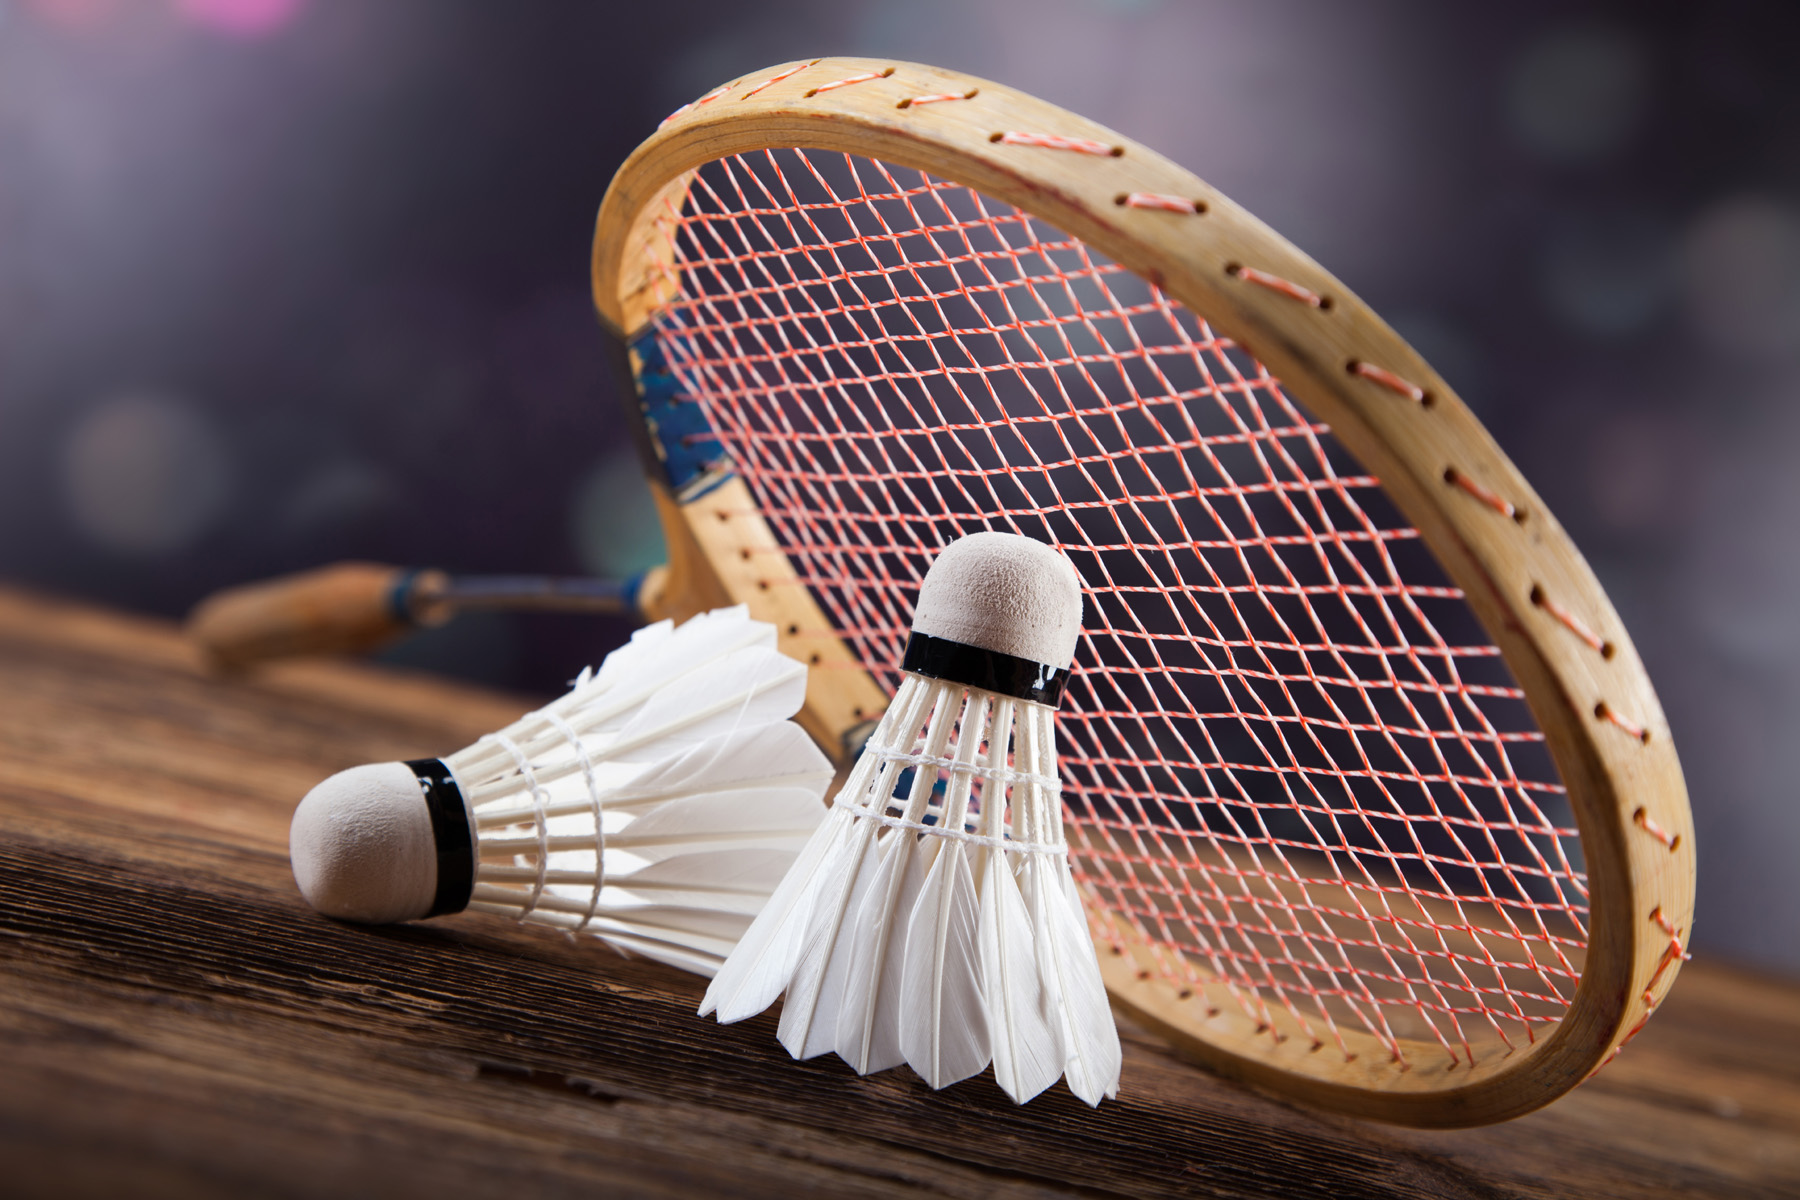 Badminton with wooden rackets 52047